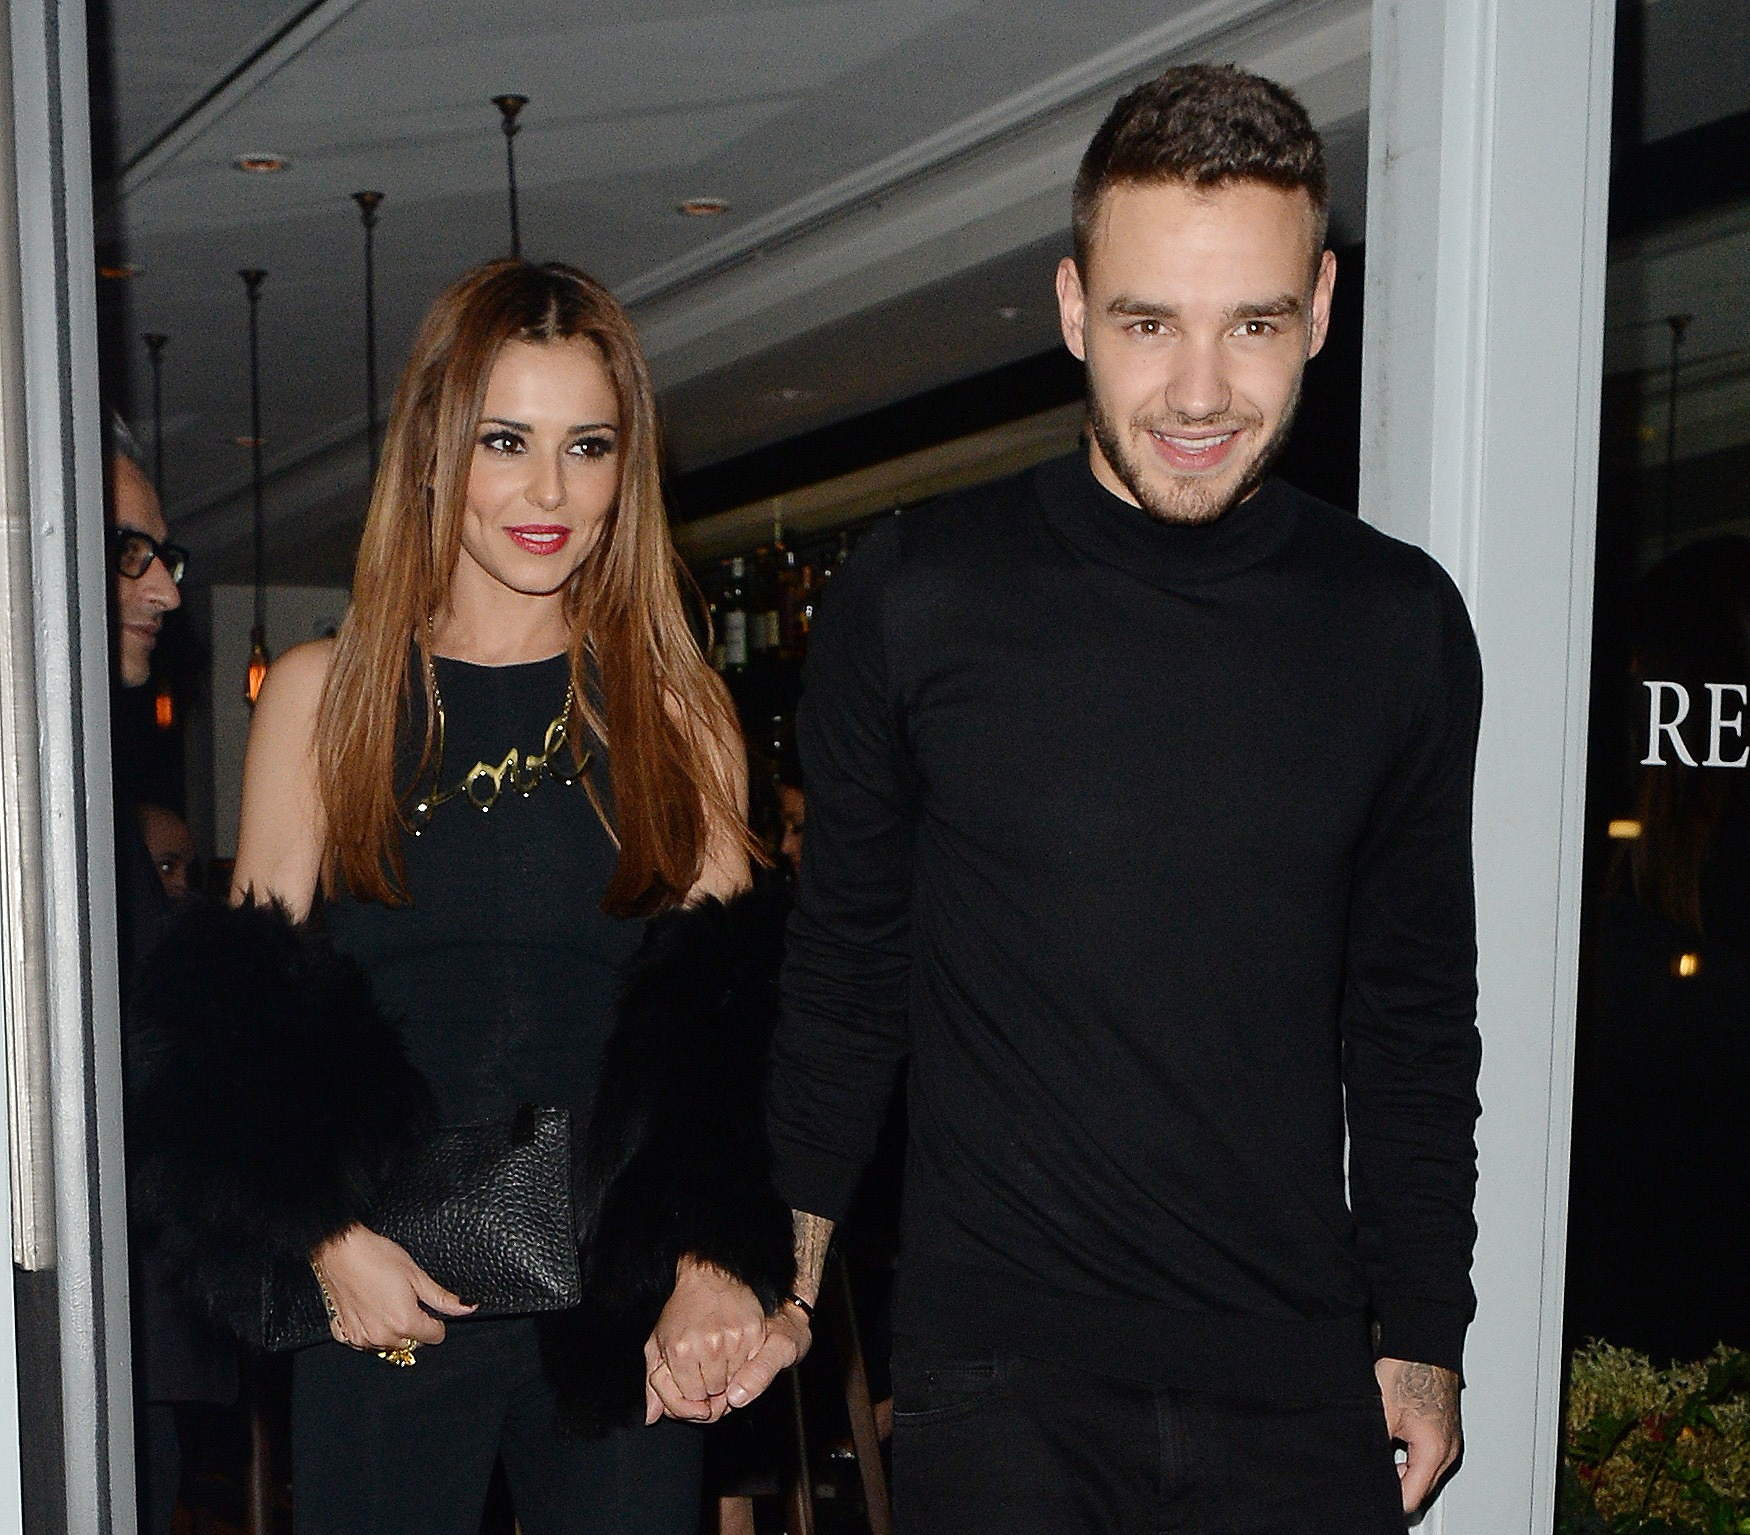 Liam Payne reveals the cause of his recent arguments with Cheryl